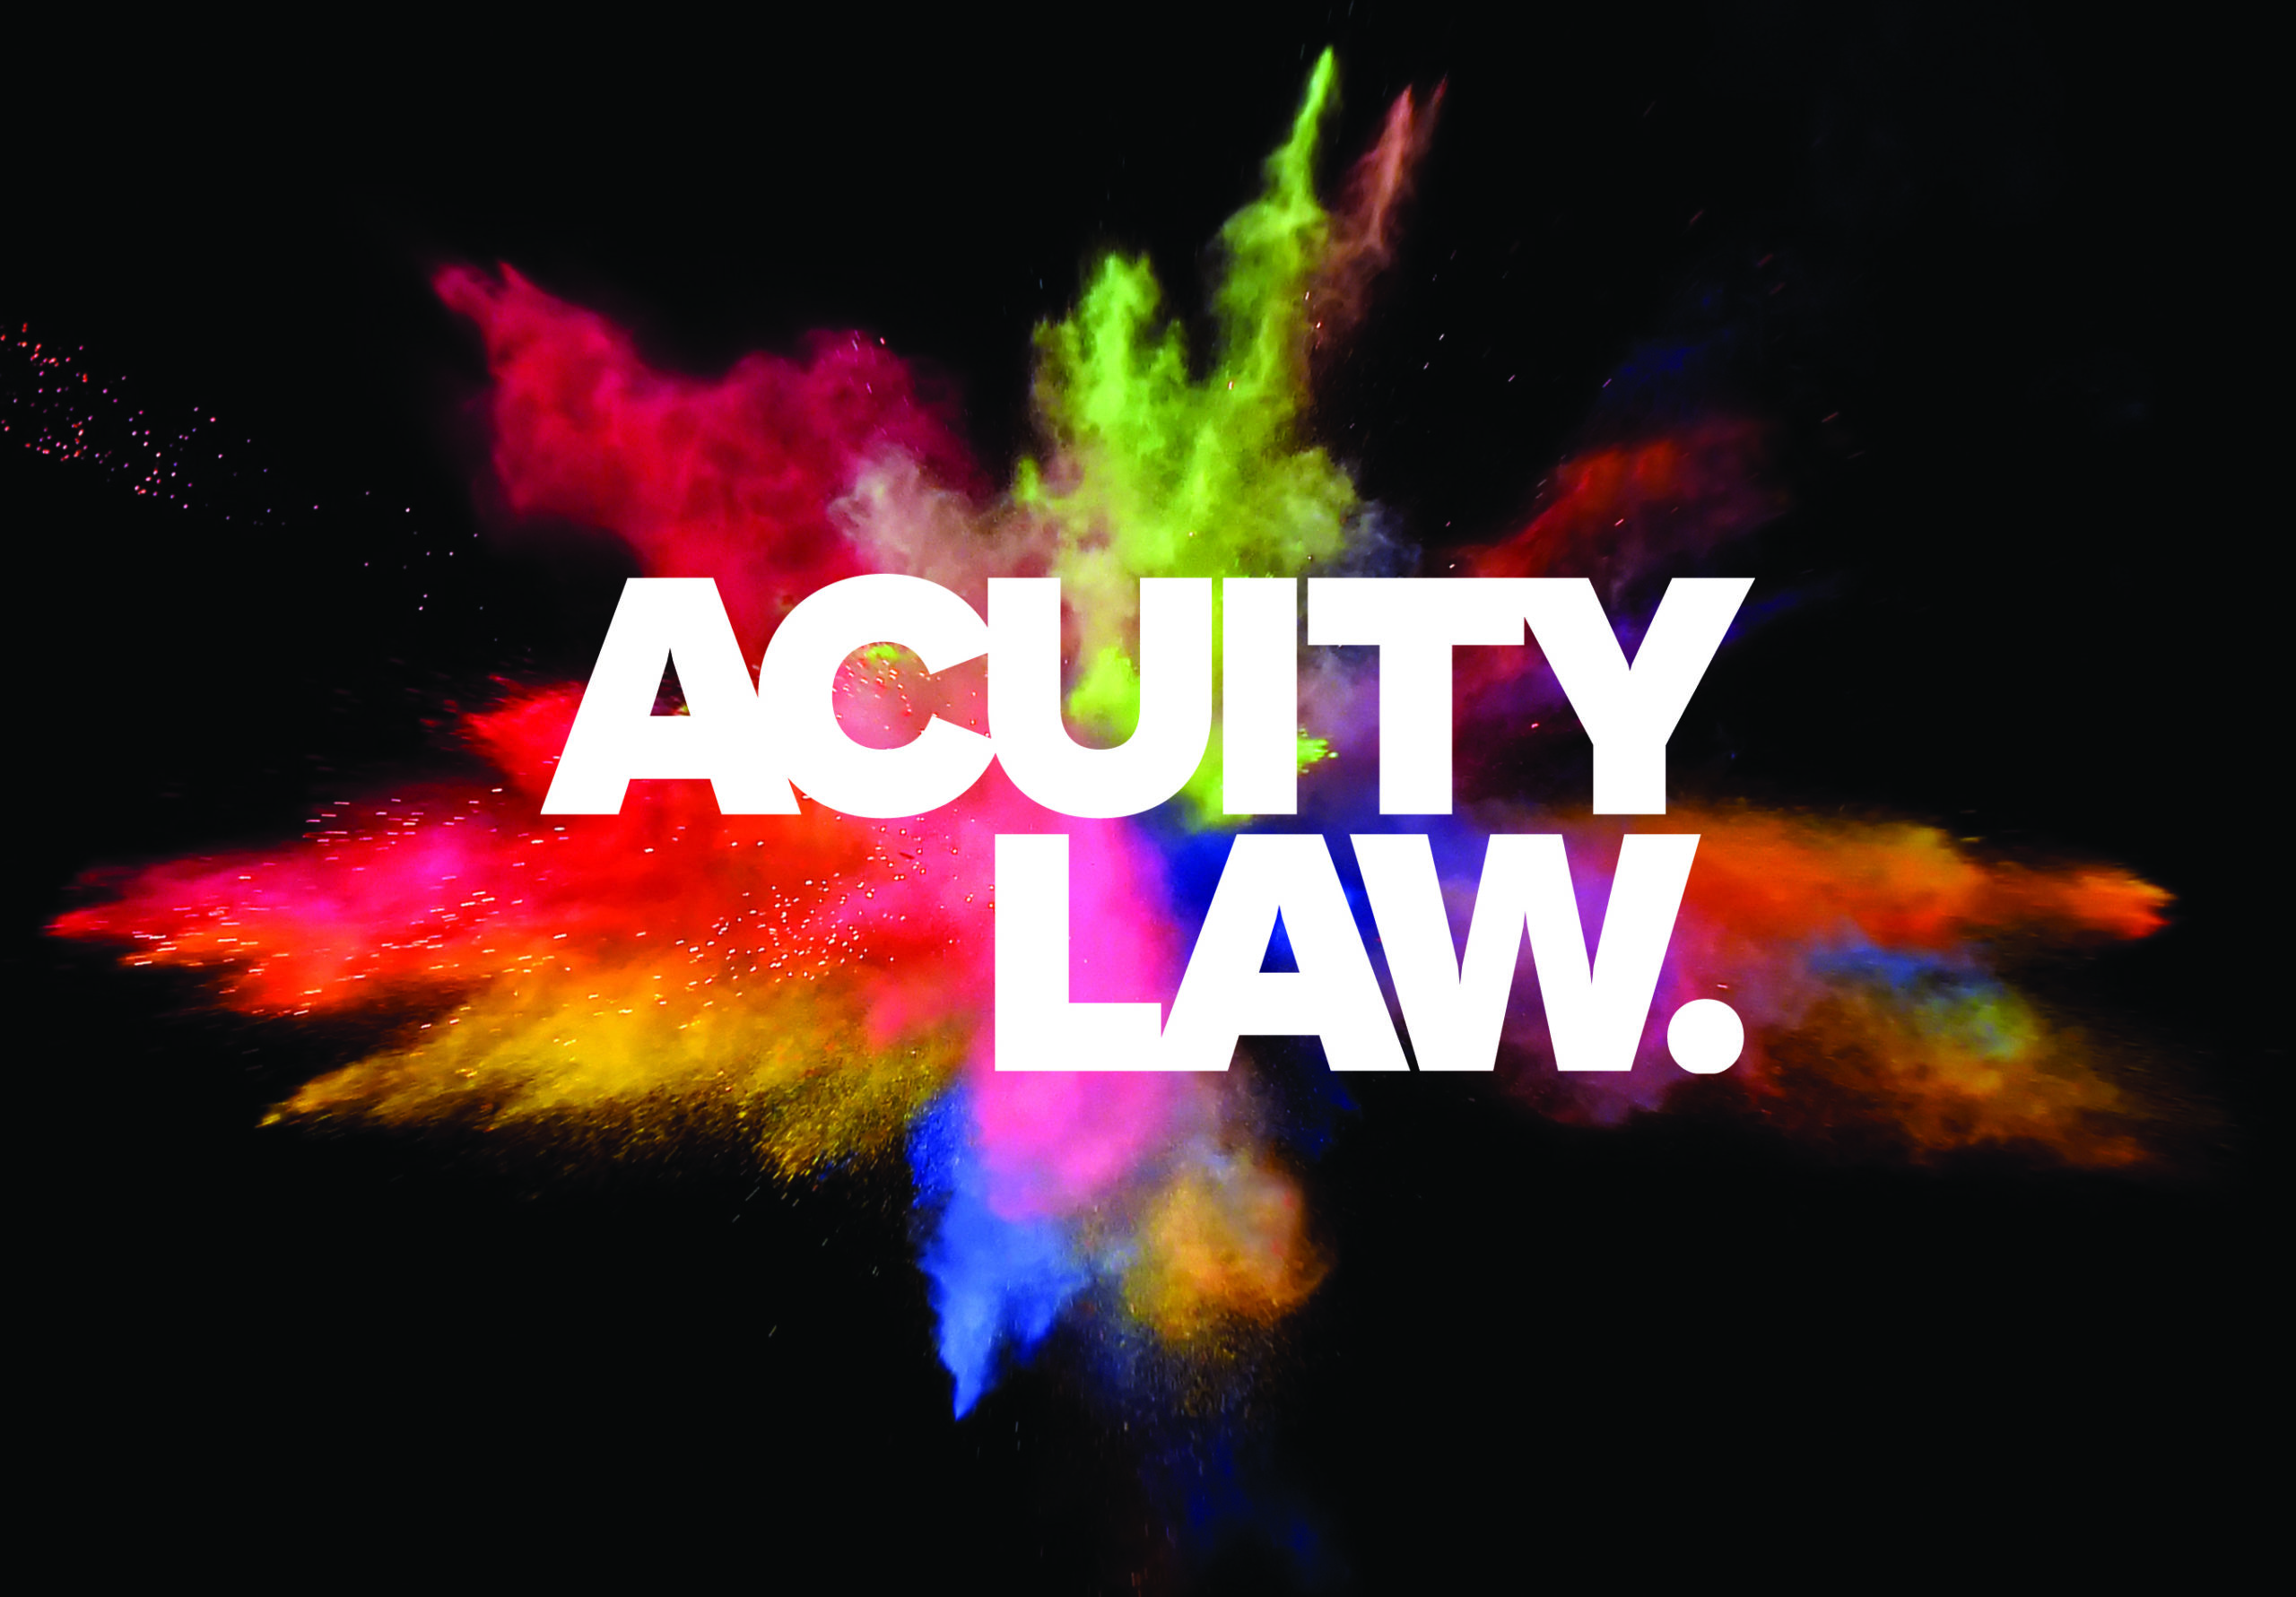 Acuity Law colourful logo